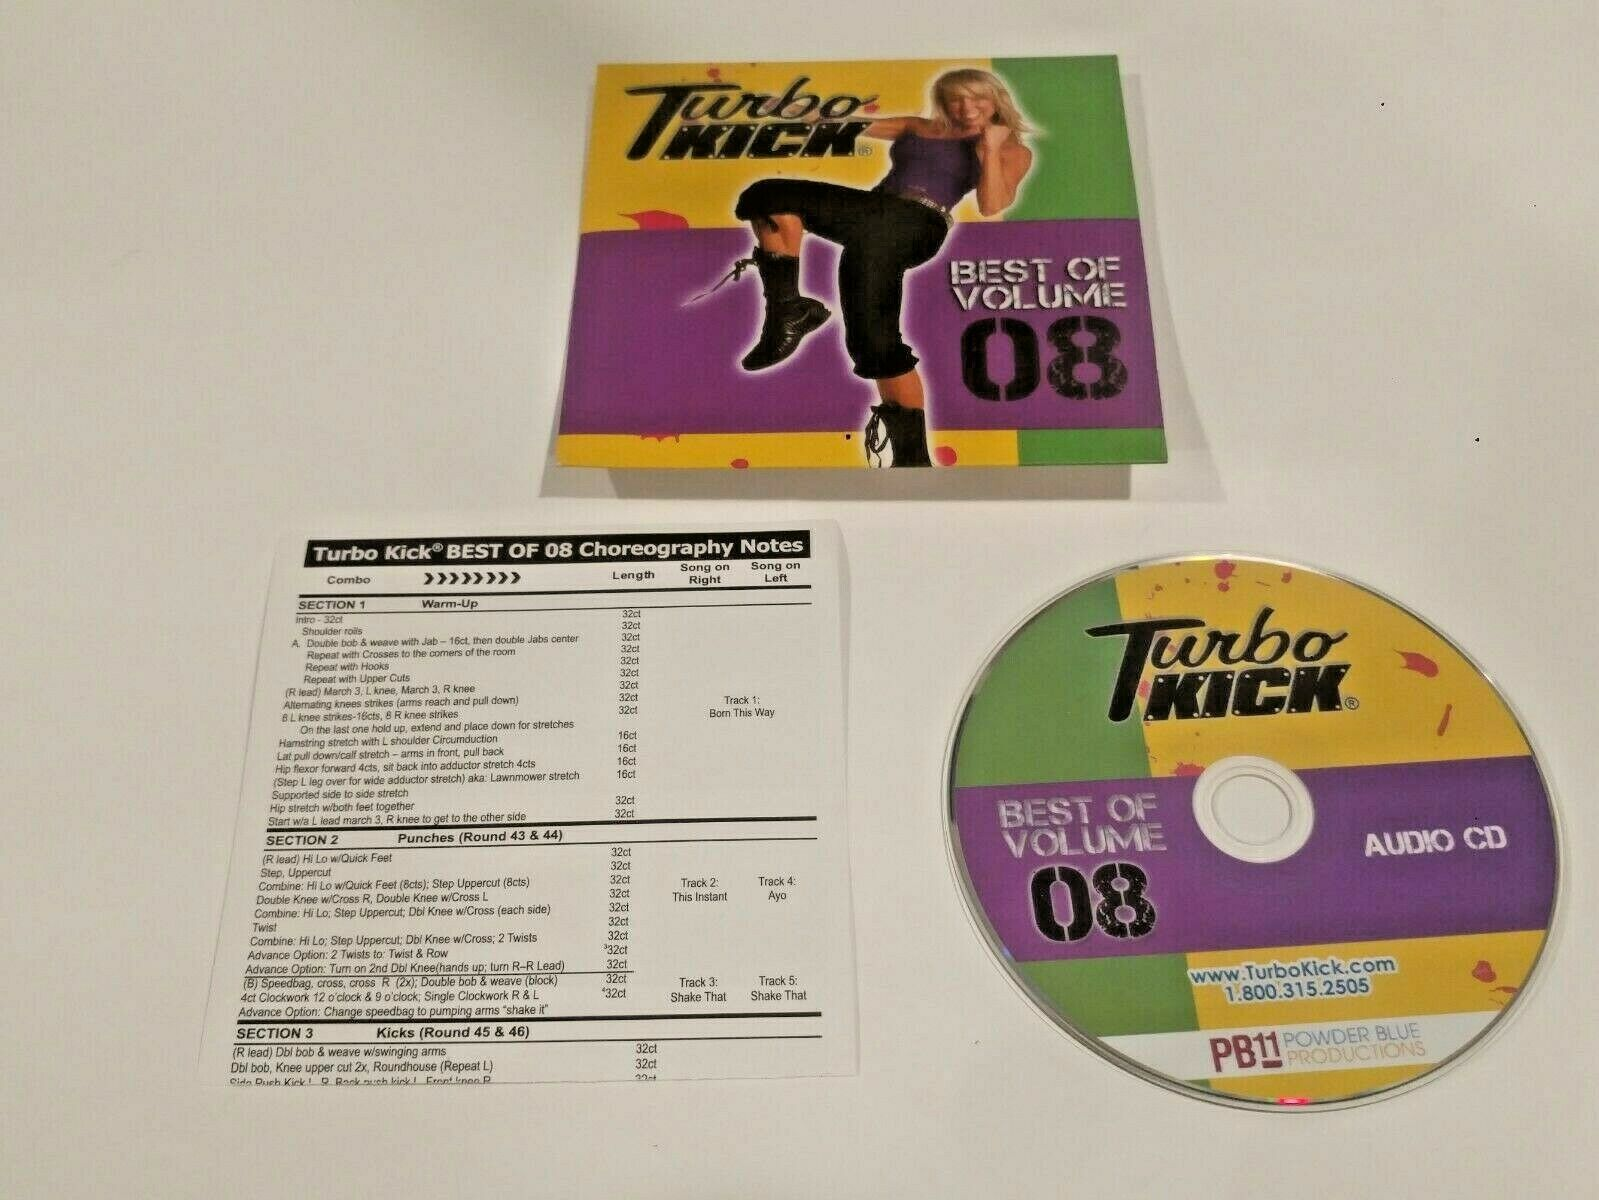 Primary image for Turbo Kick Best of 08 DVD Beachbody Powder Blue Chalene Johnson